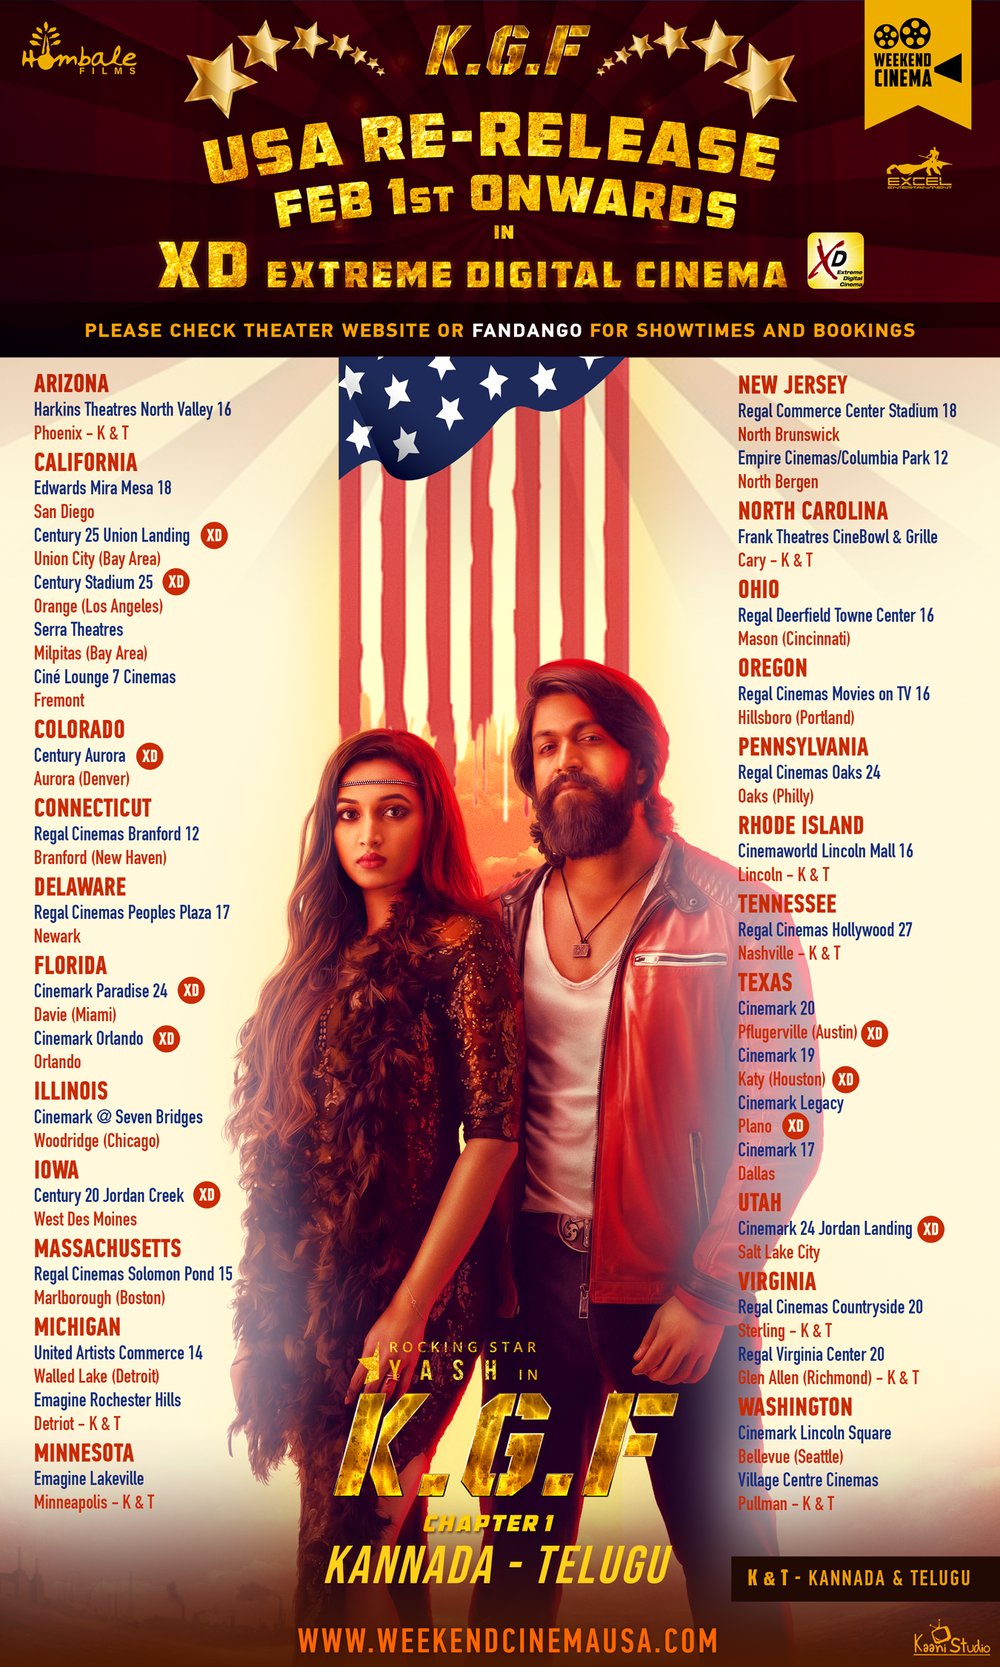 KGF_ReRelease USA Poster.png